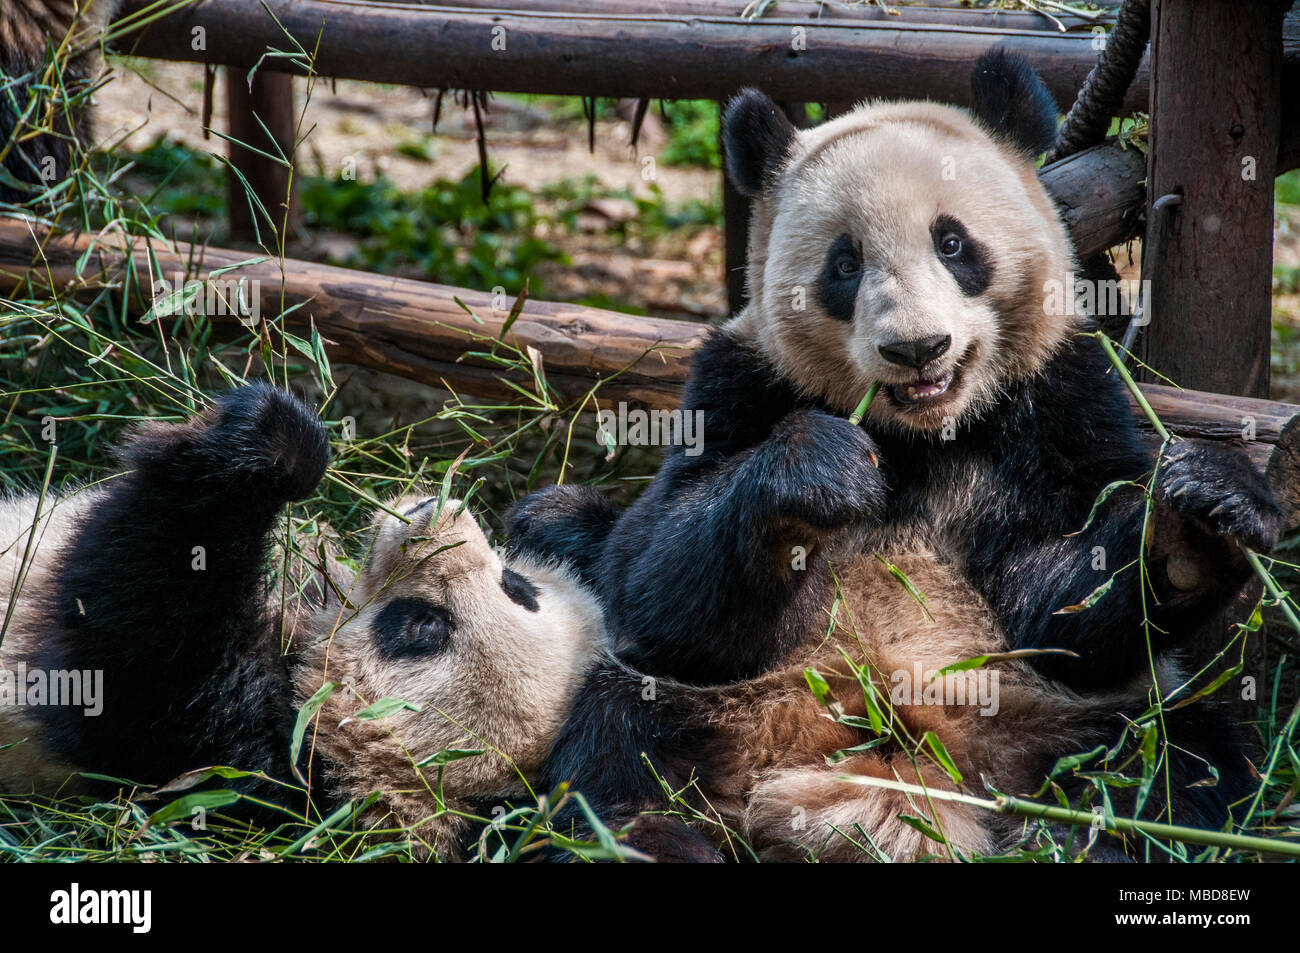 A Giant Panda in an enclosure at Chengdu Research Base of Giant Panda Breeding in China - Stock Image